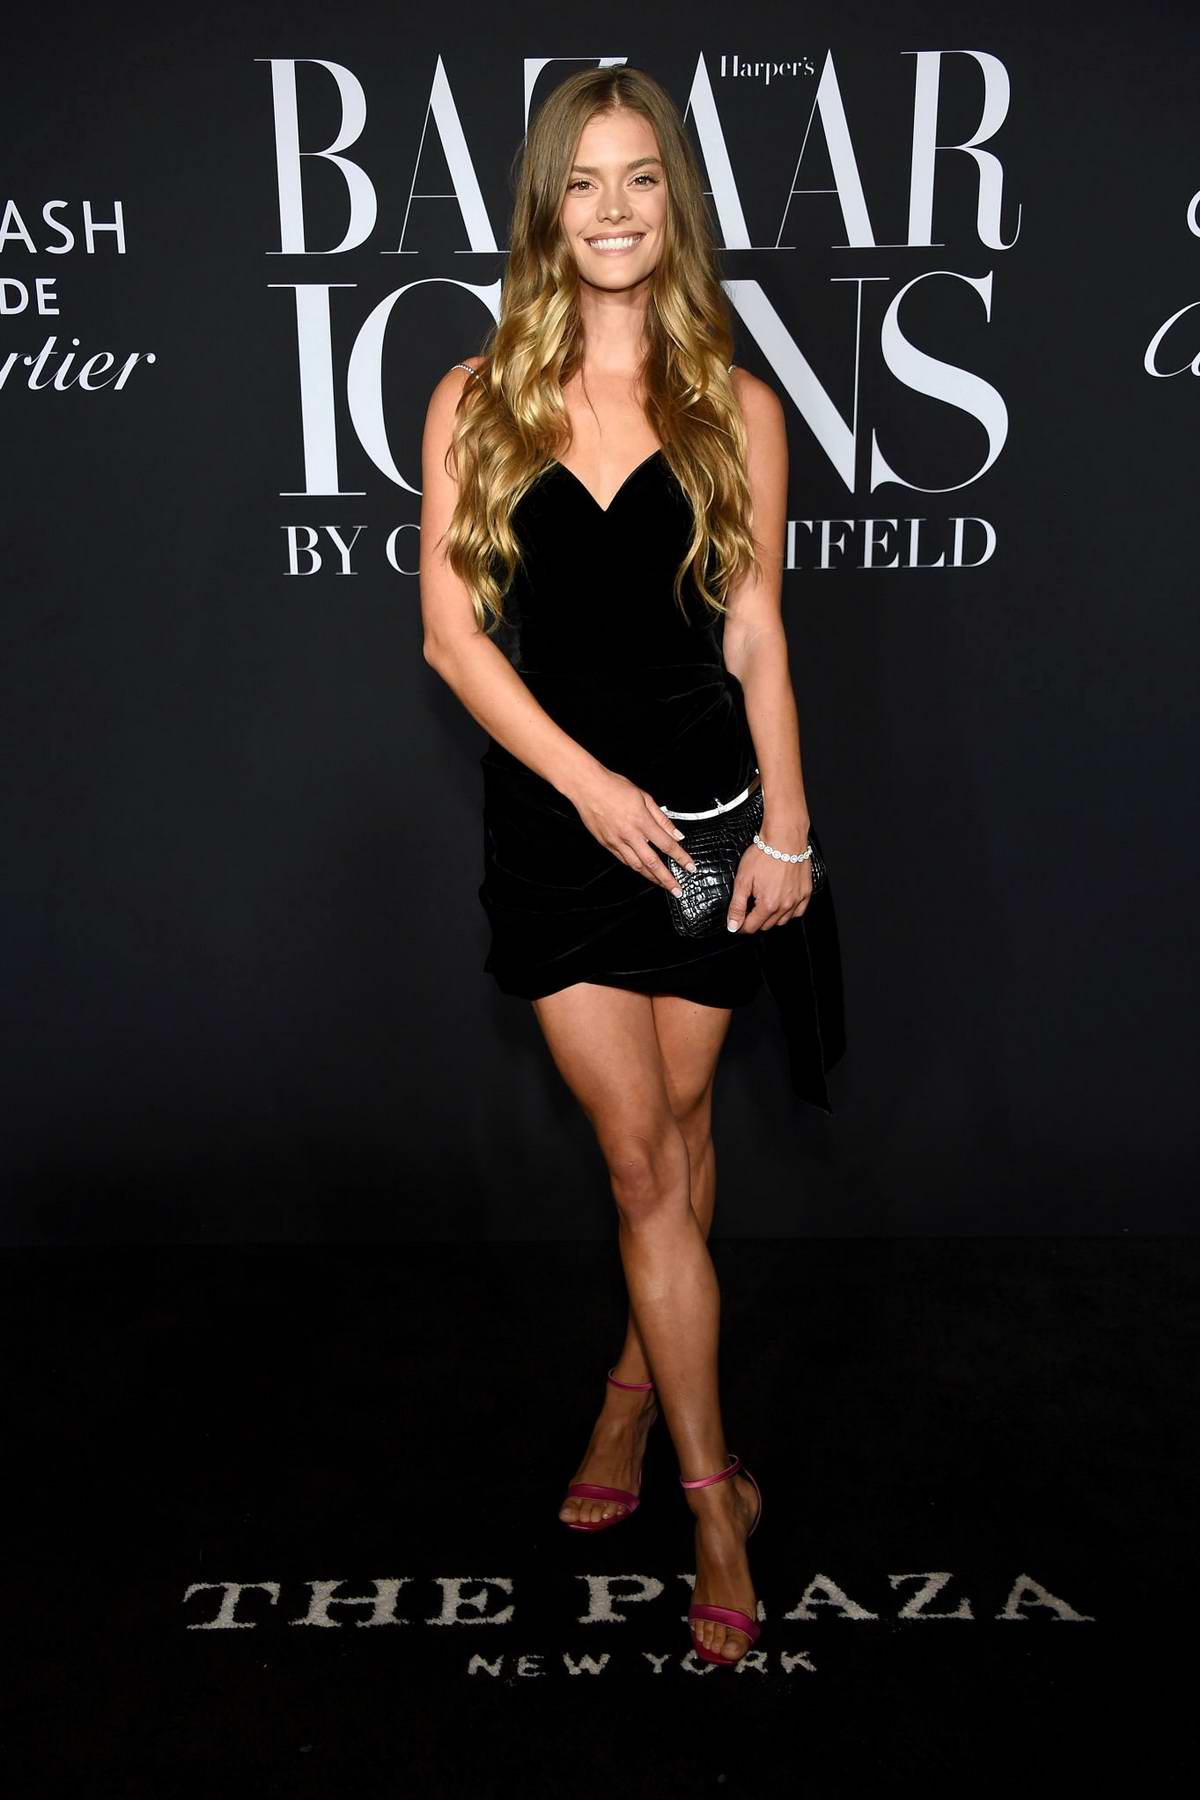 Nina Agdal attends the 2019 Harper's Bazaar ICONS Party at The Plaza Hotel in New York City